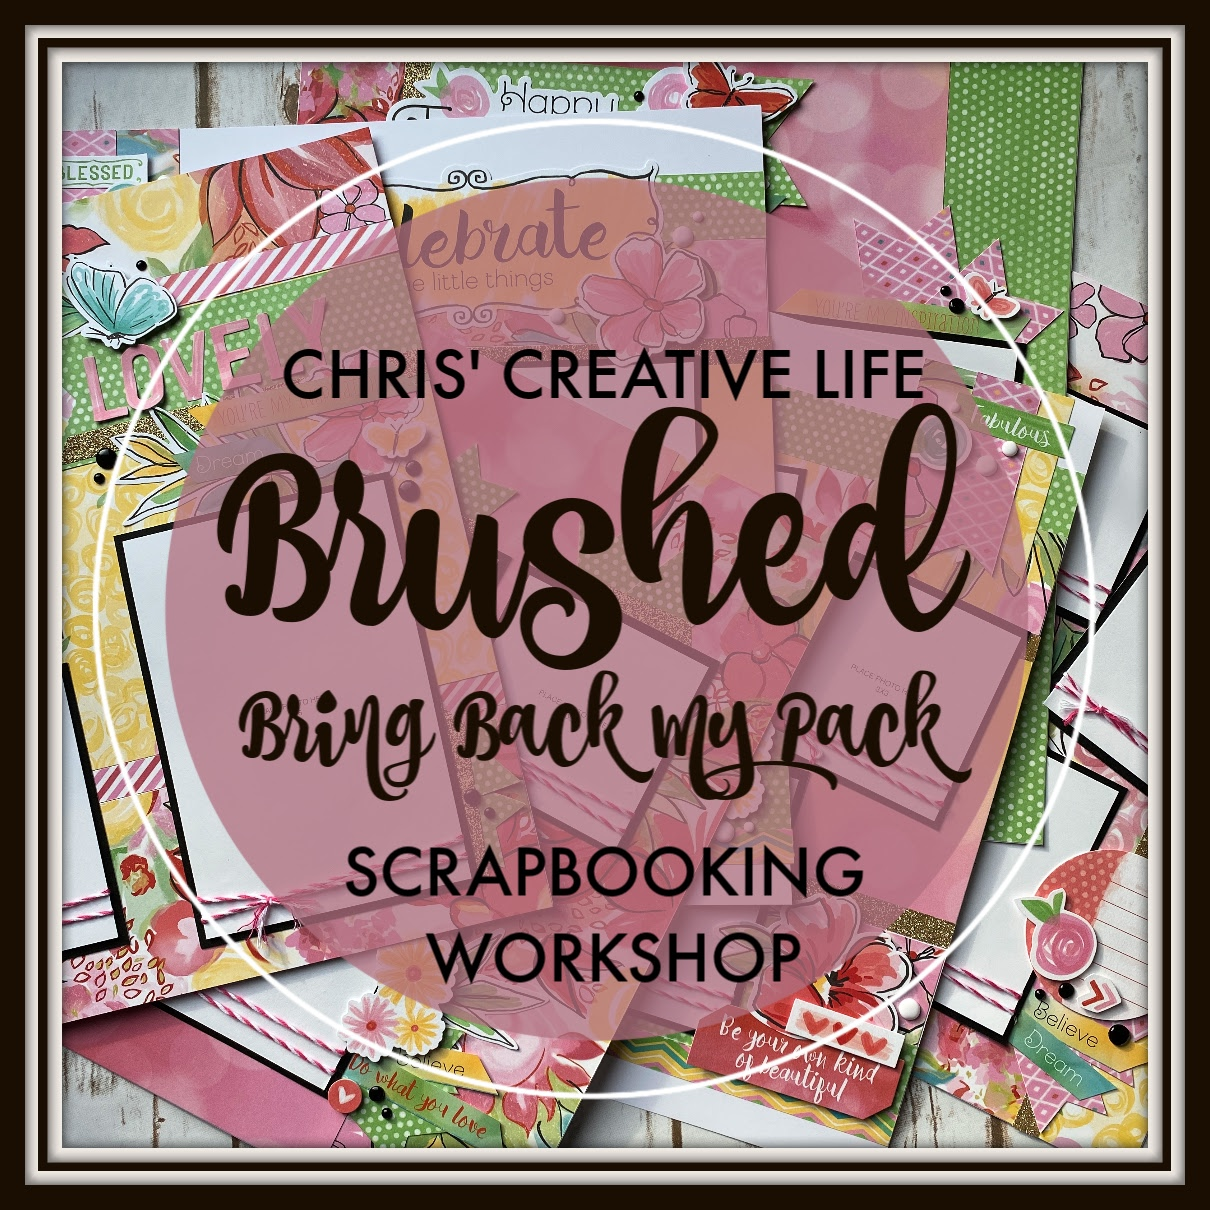 Brushed-Bring Back My Pack Scrapbooking Workshop